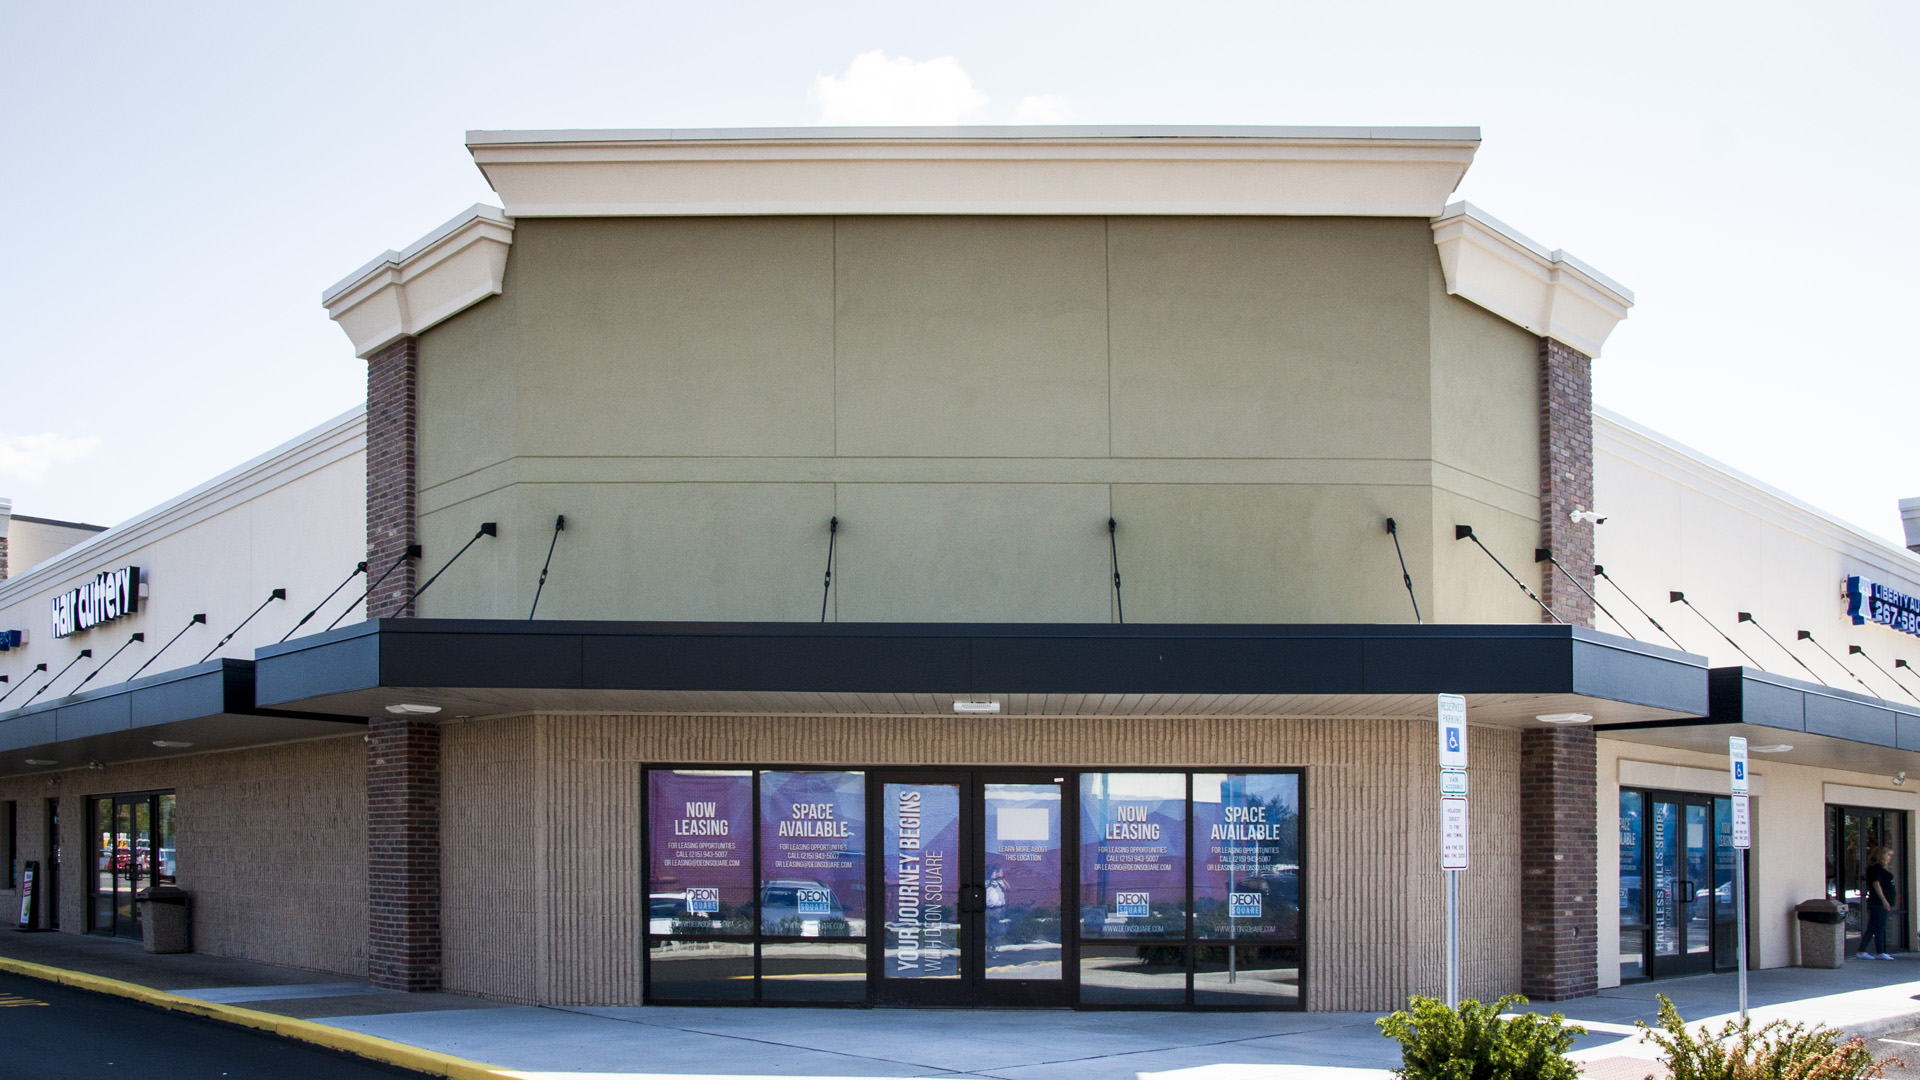 514 S. Oxford Valley Road in Fairless Hills for lease at Deon Square Shopping Center